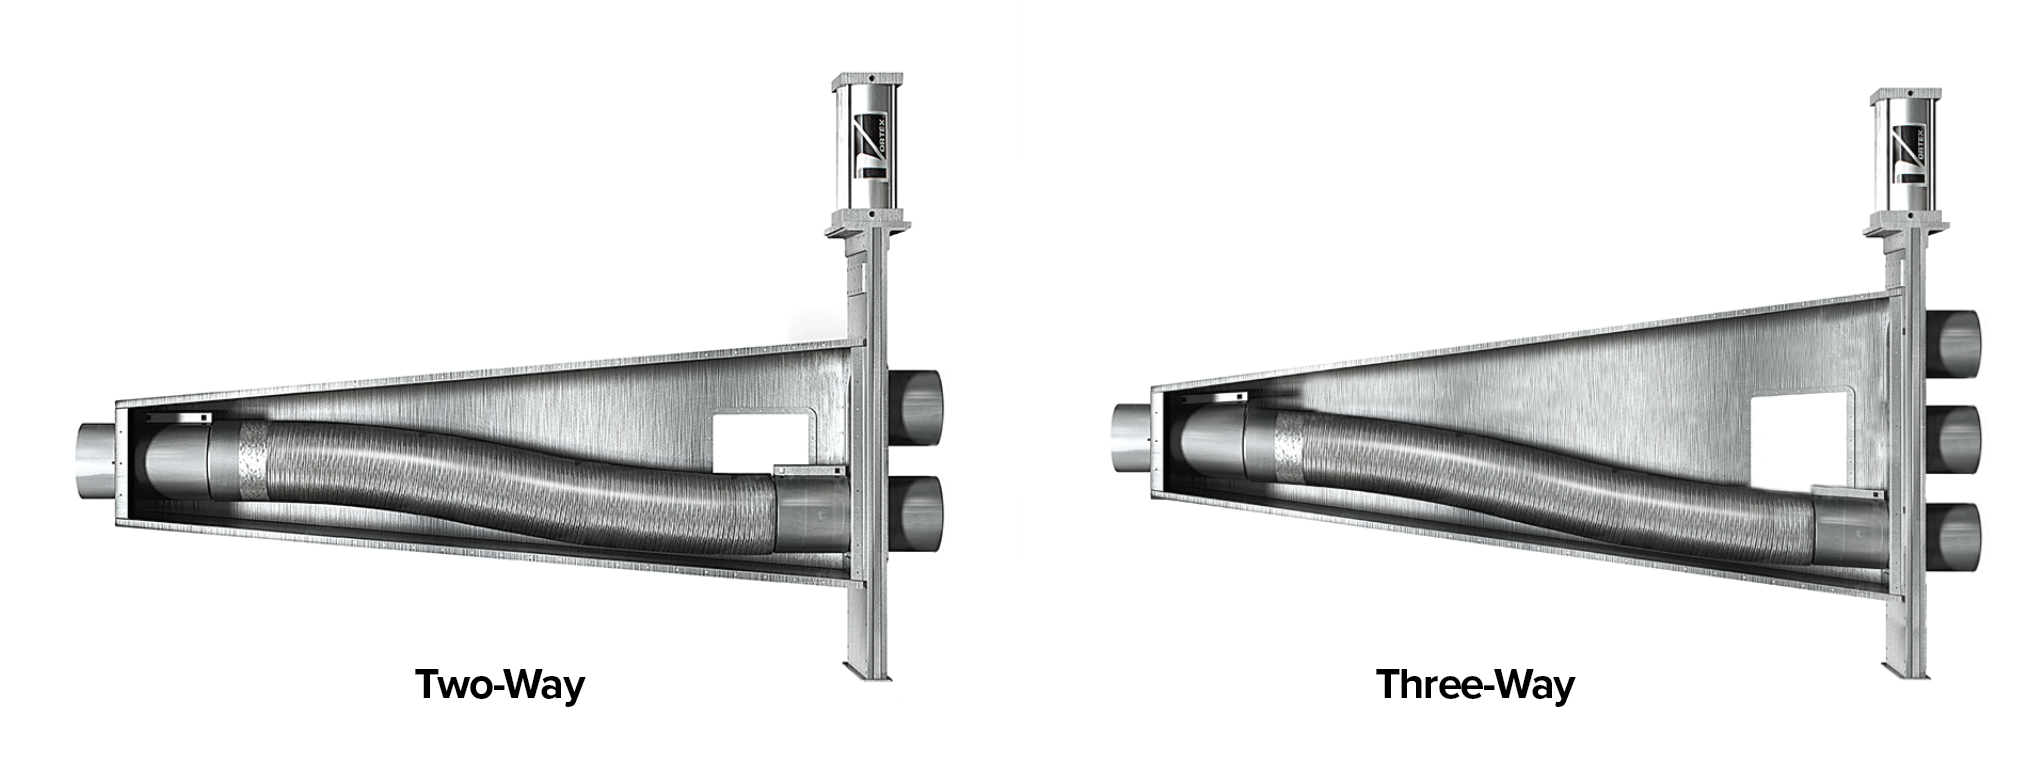 Two-way and three-way options available for the Flex Tube Diverter.